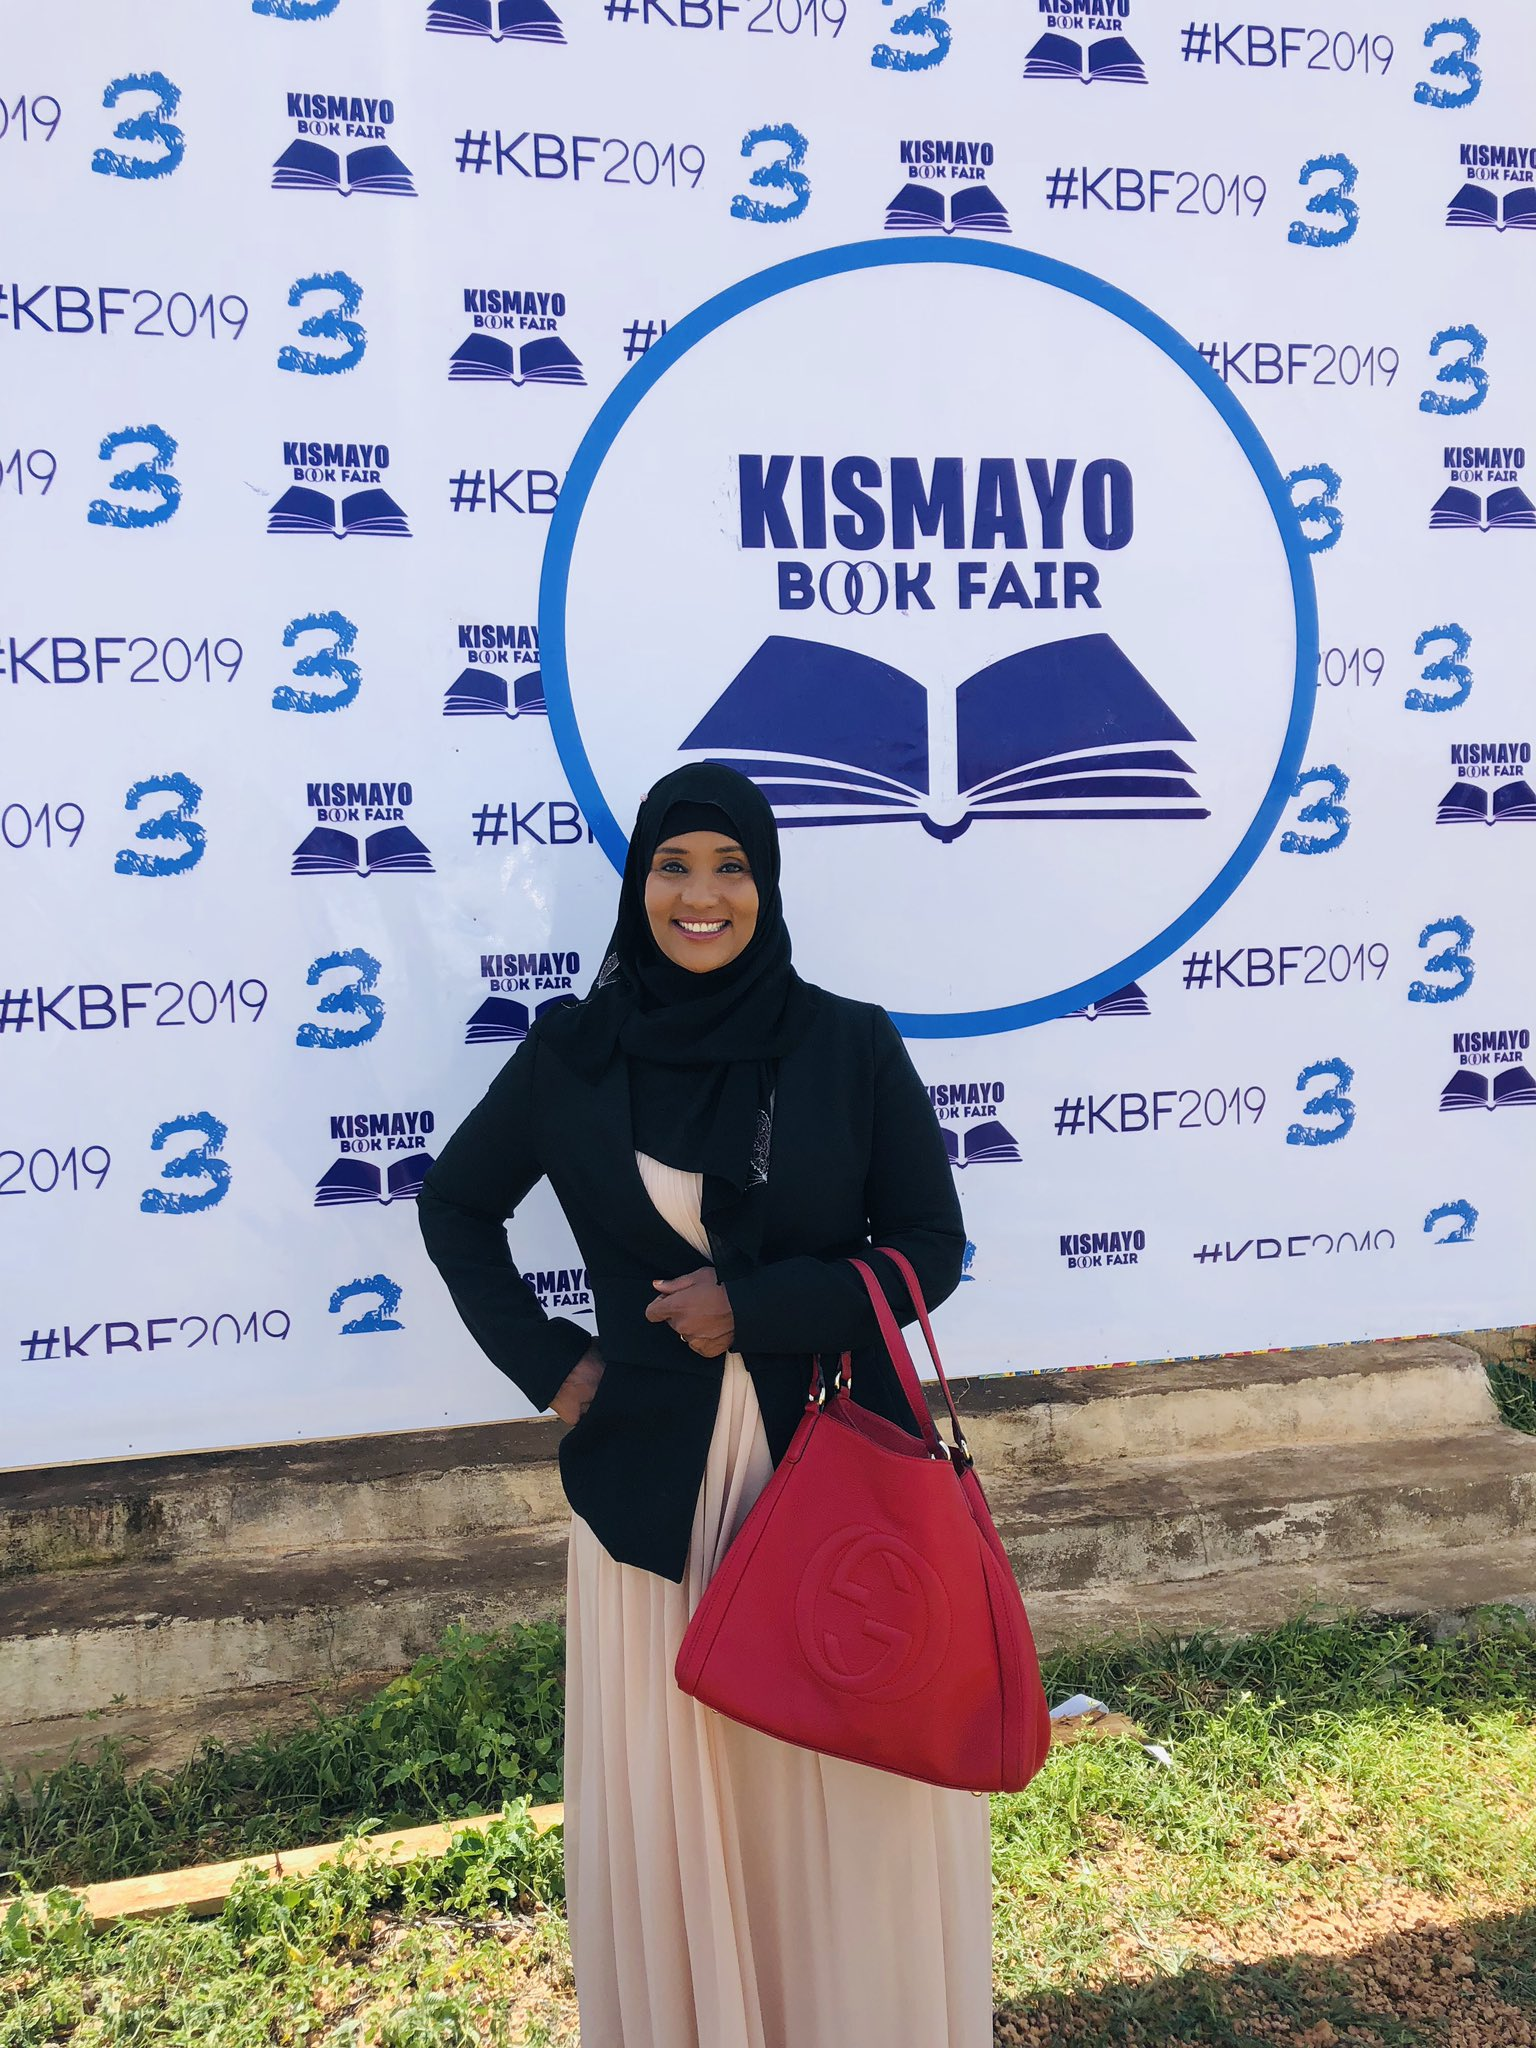 Hodan Nayaleh attended the Kismayo Book Fair a few days before her death